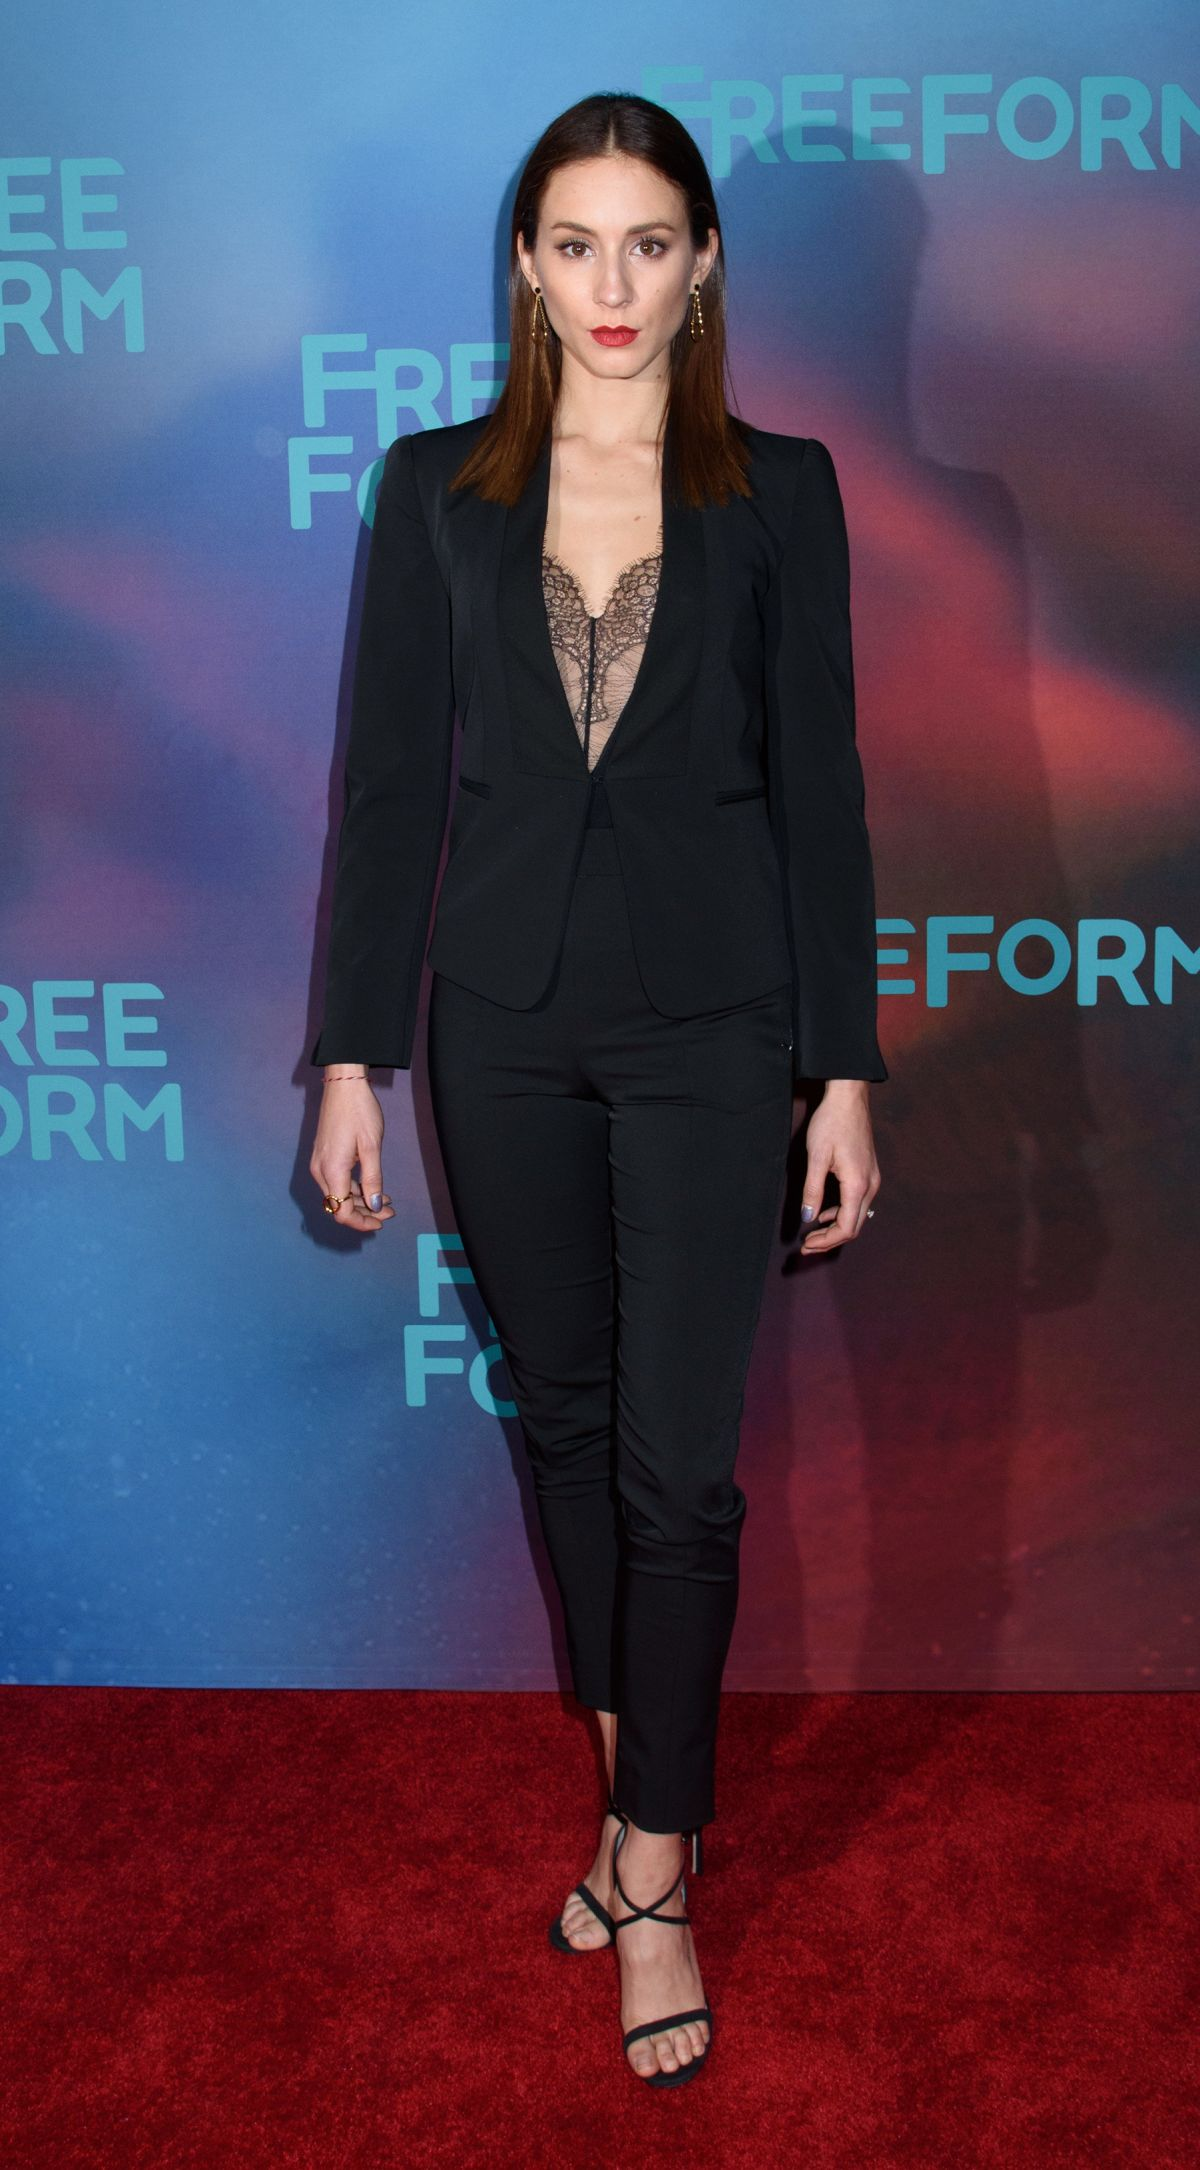 Troian Bellisario At 2017 Freeform Upfront in NYC   troian-bellisario-at-2017-freeform-upfront-in-nyc_12